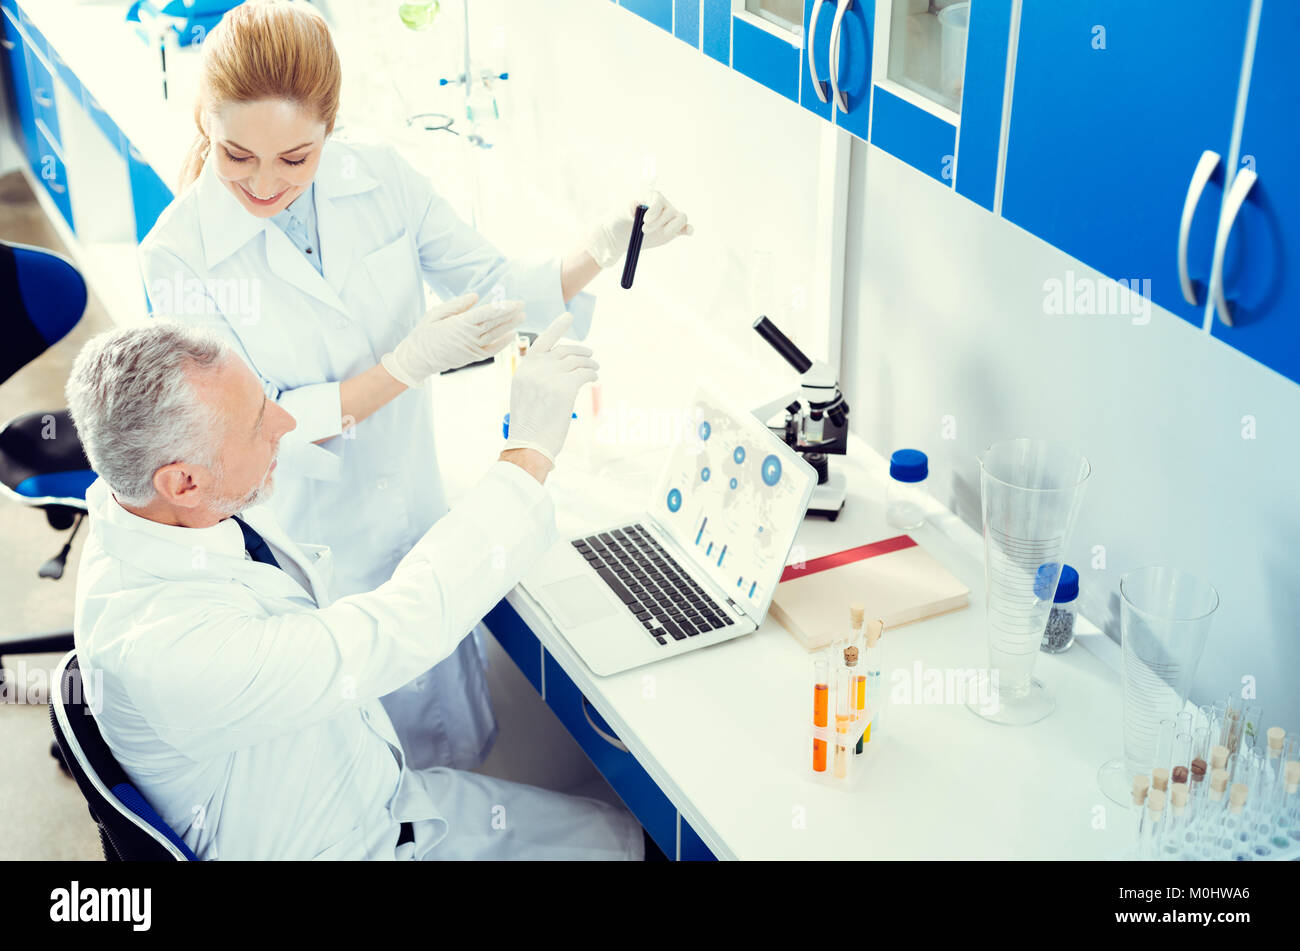 Smiling statists consulting during chemical experiment - Stock Image